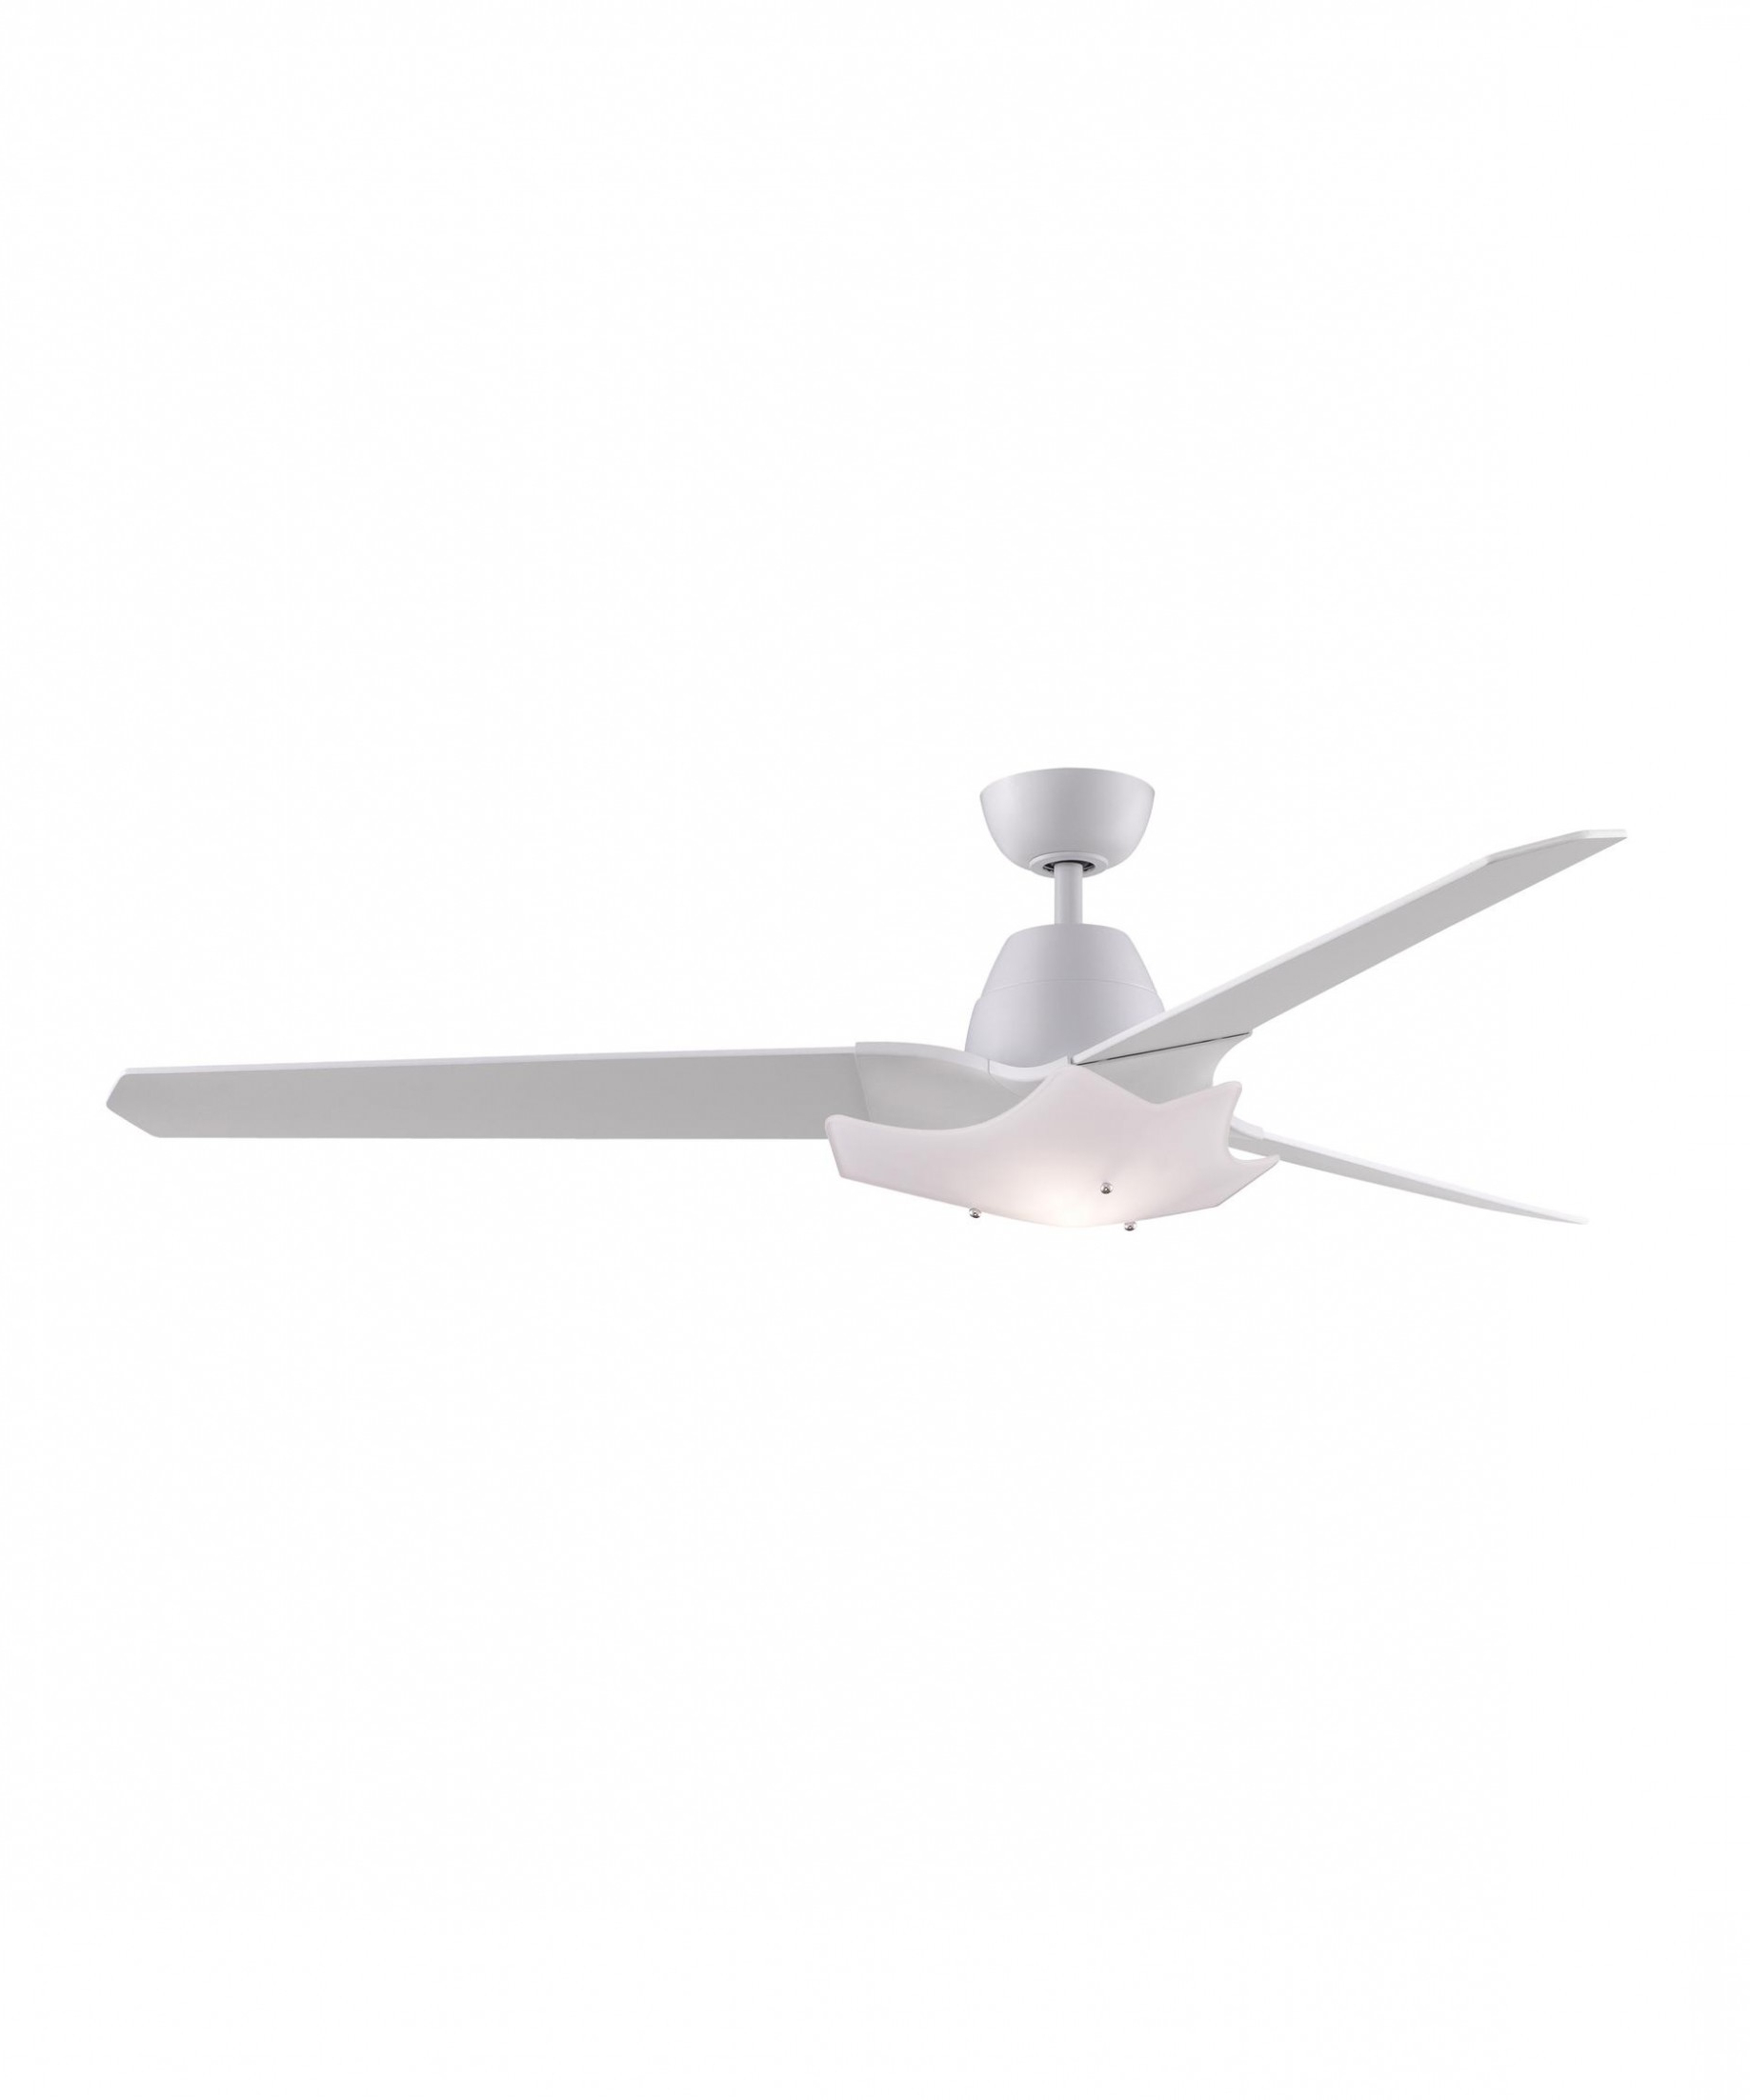 Fanimation Fpd6220 Wylde 72 Inch 3 Blade Ceiling Fan Within Newest Zonix 3 Blade Ceiling Fans (View 3 of 20)